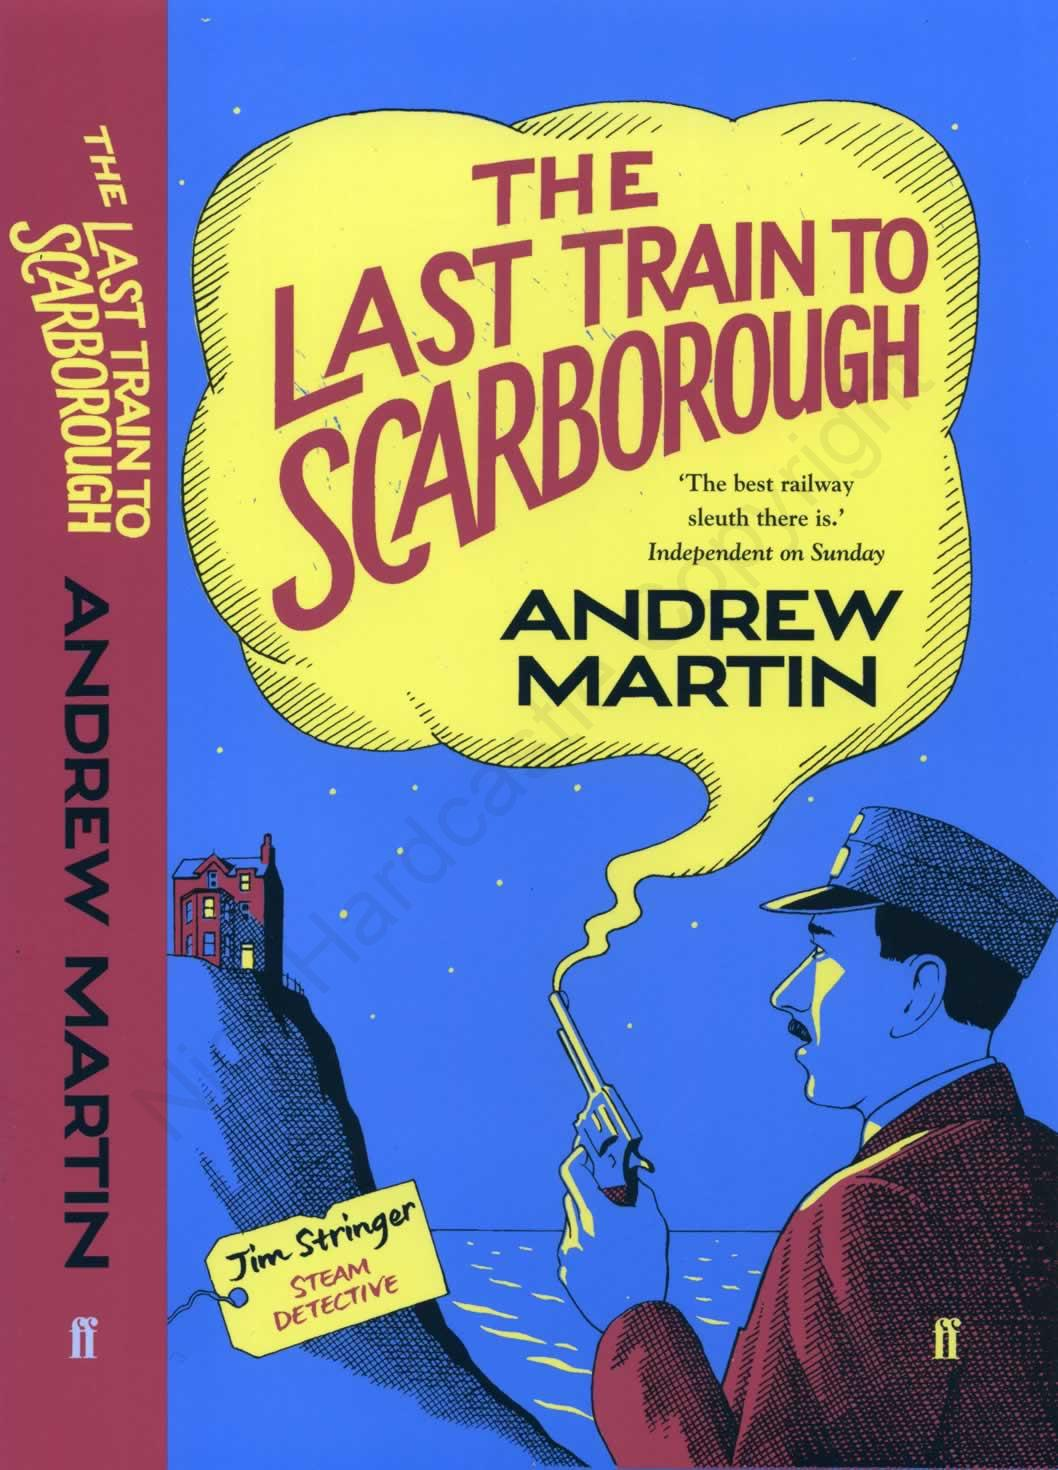 The Last Train to Scarborough-Faber & Faber